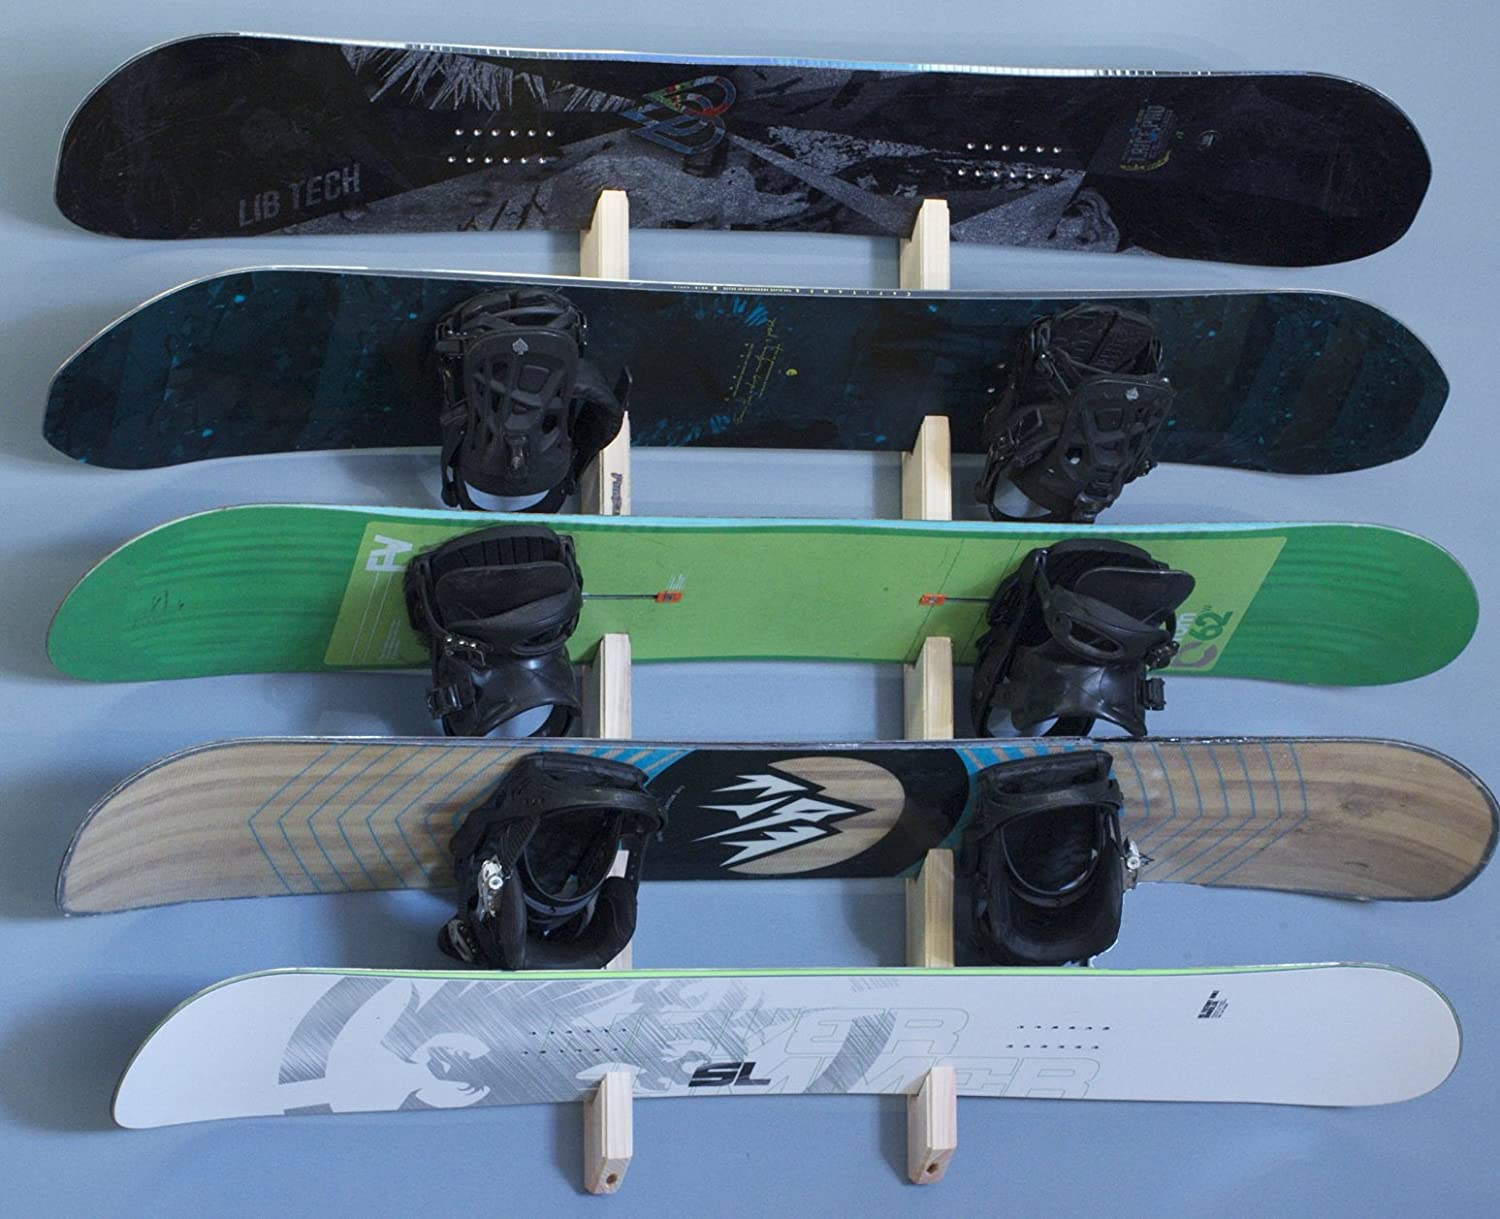 Wooden wall mounted rack for all types of skateboards and snowboards